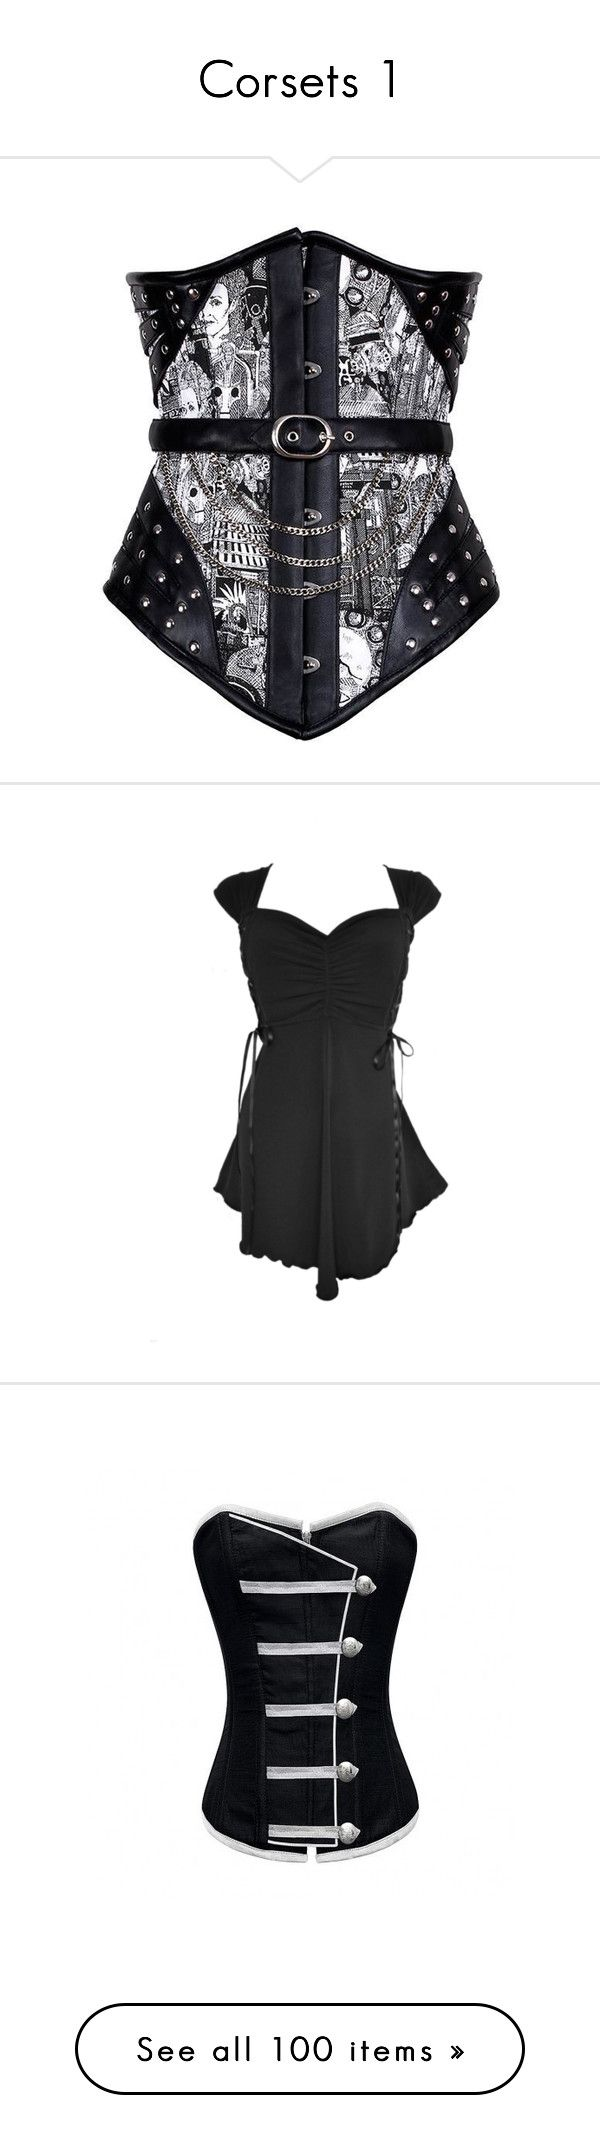 """""""Corsets 1"""" by xblackbettyx ❤ liked on Polyvore featuring corsets, tops, dresses, victorian corset, plus size corset, plus size corset tops, plus size tops, goth top, corset and steampunk"""